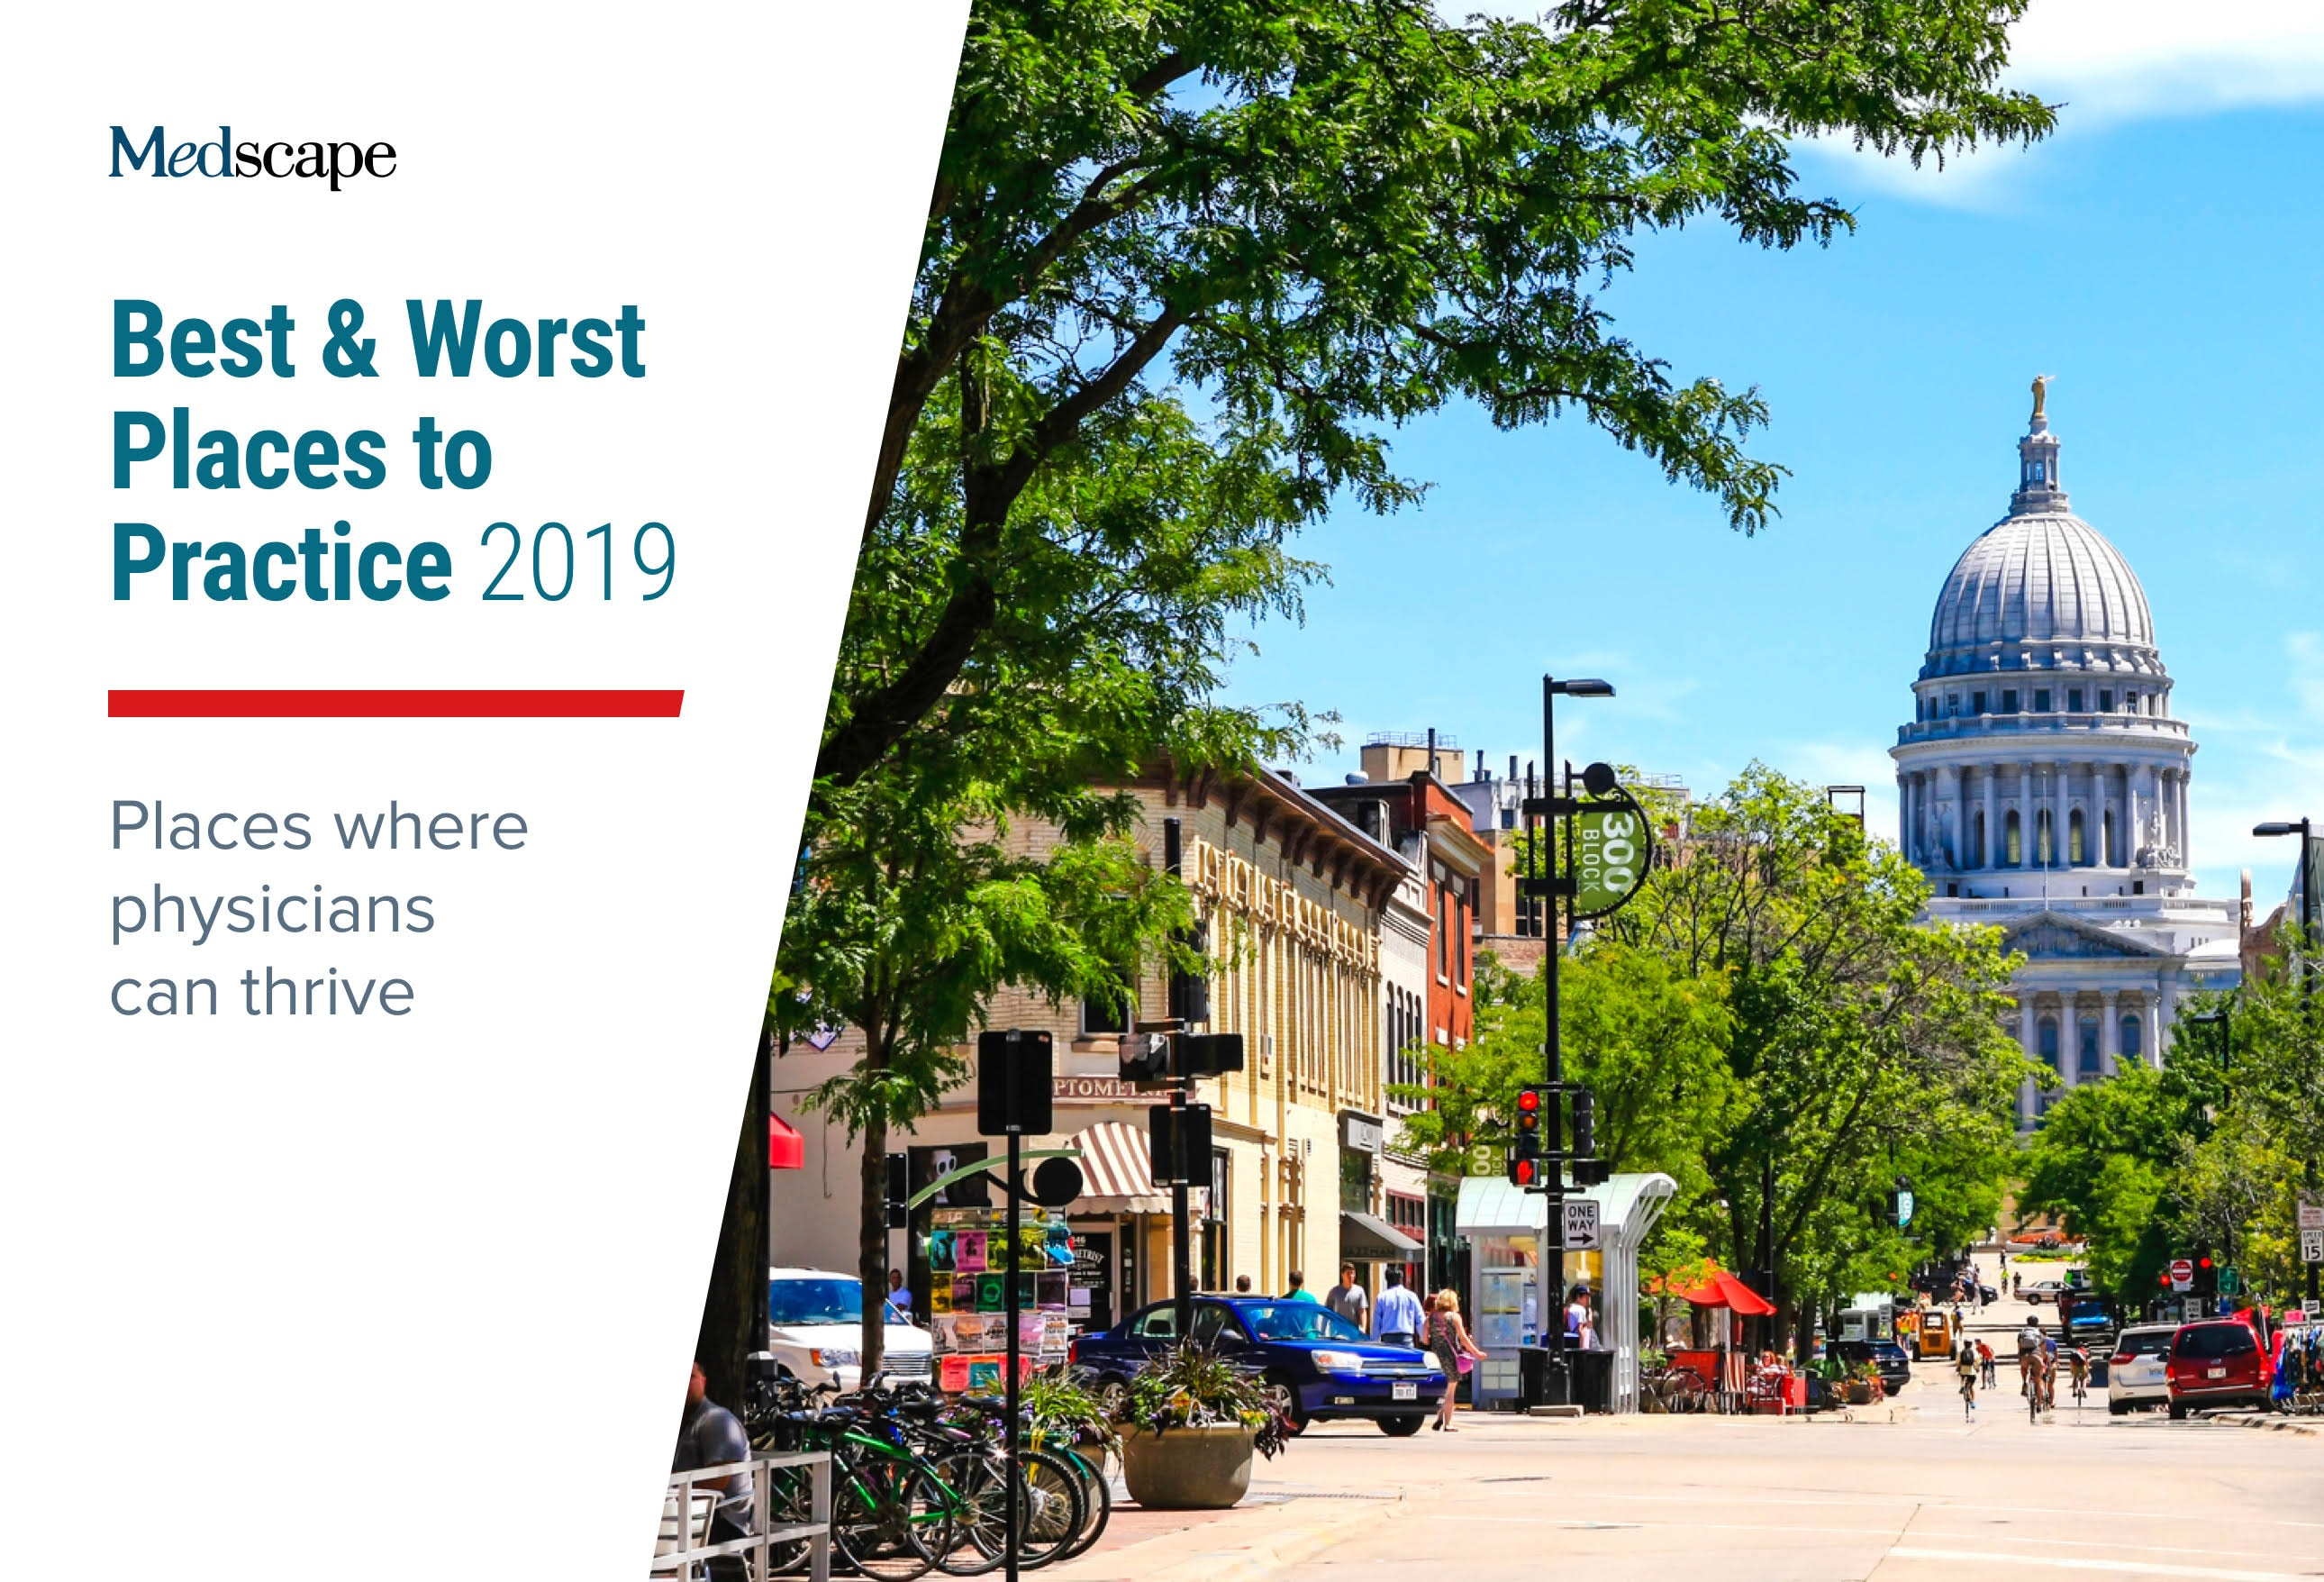 Best & Worst Places to Practice 2019